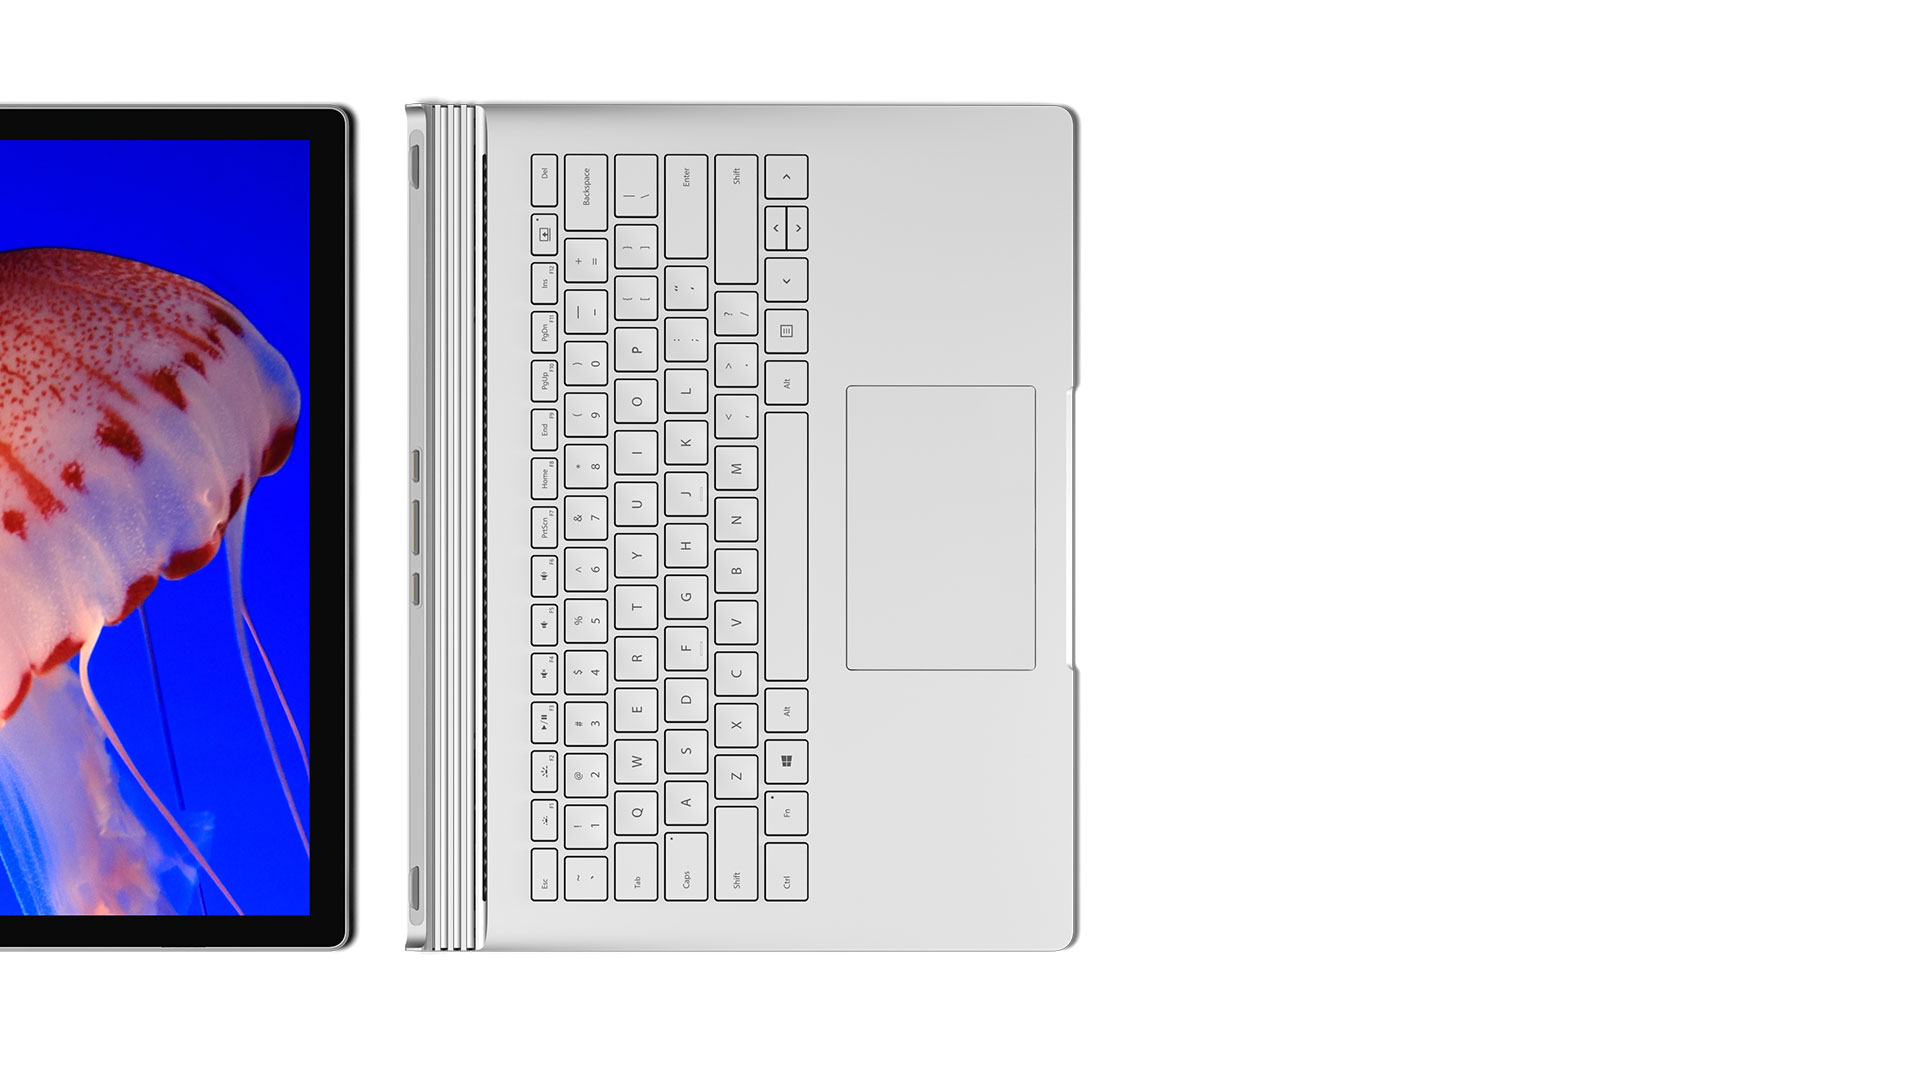 Surface Book base and display detaching